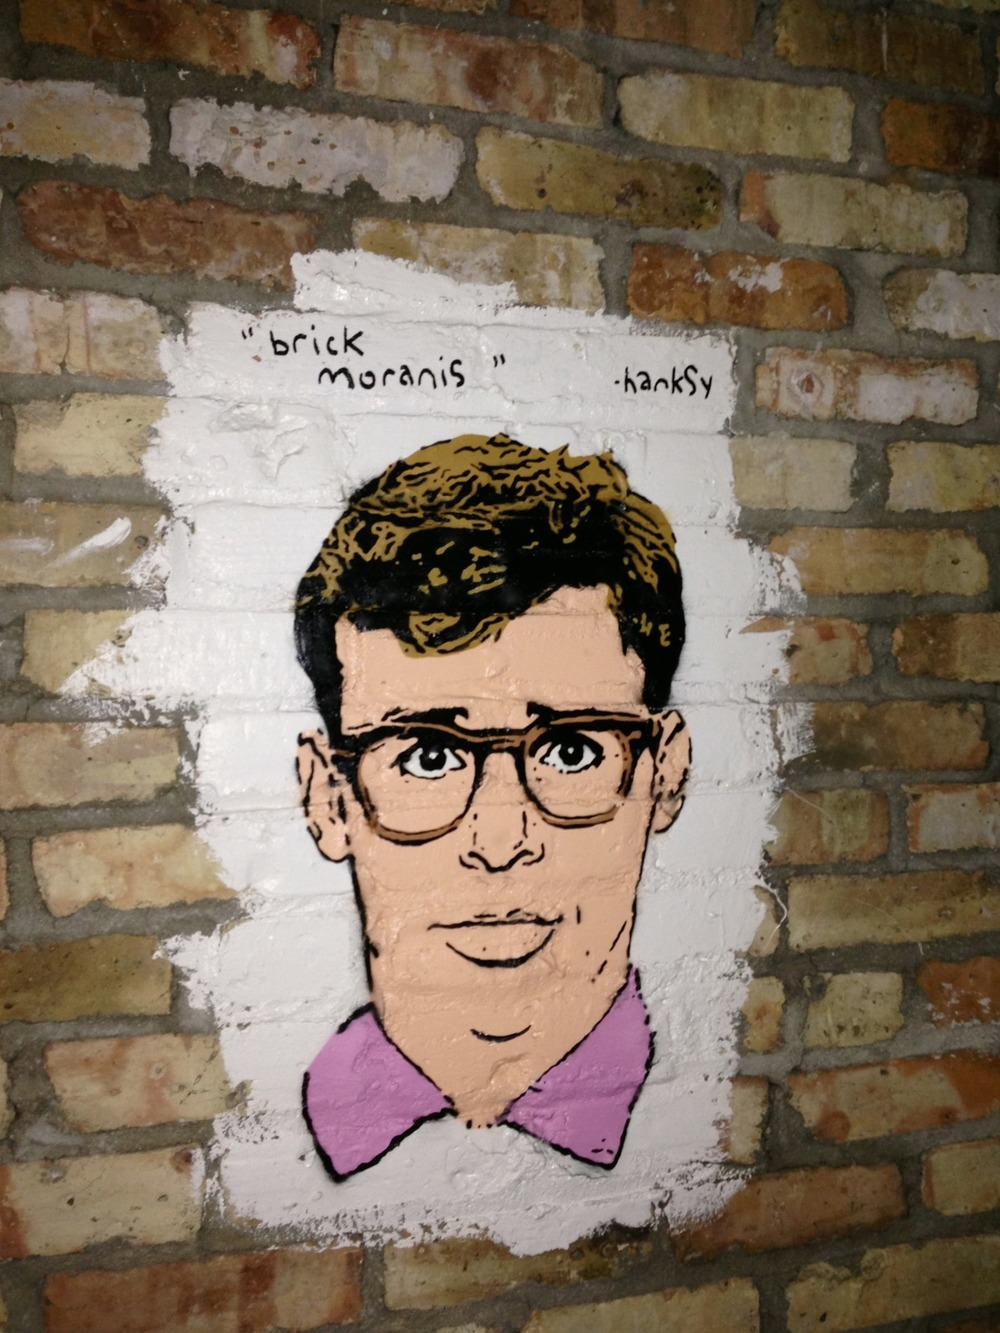 Brick Moranis, Chicago, IL